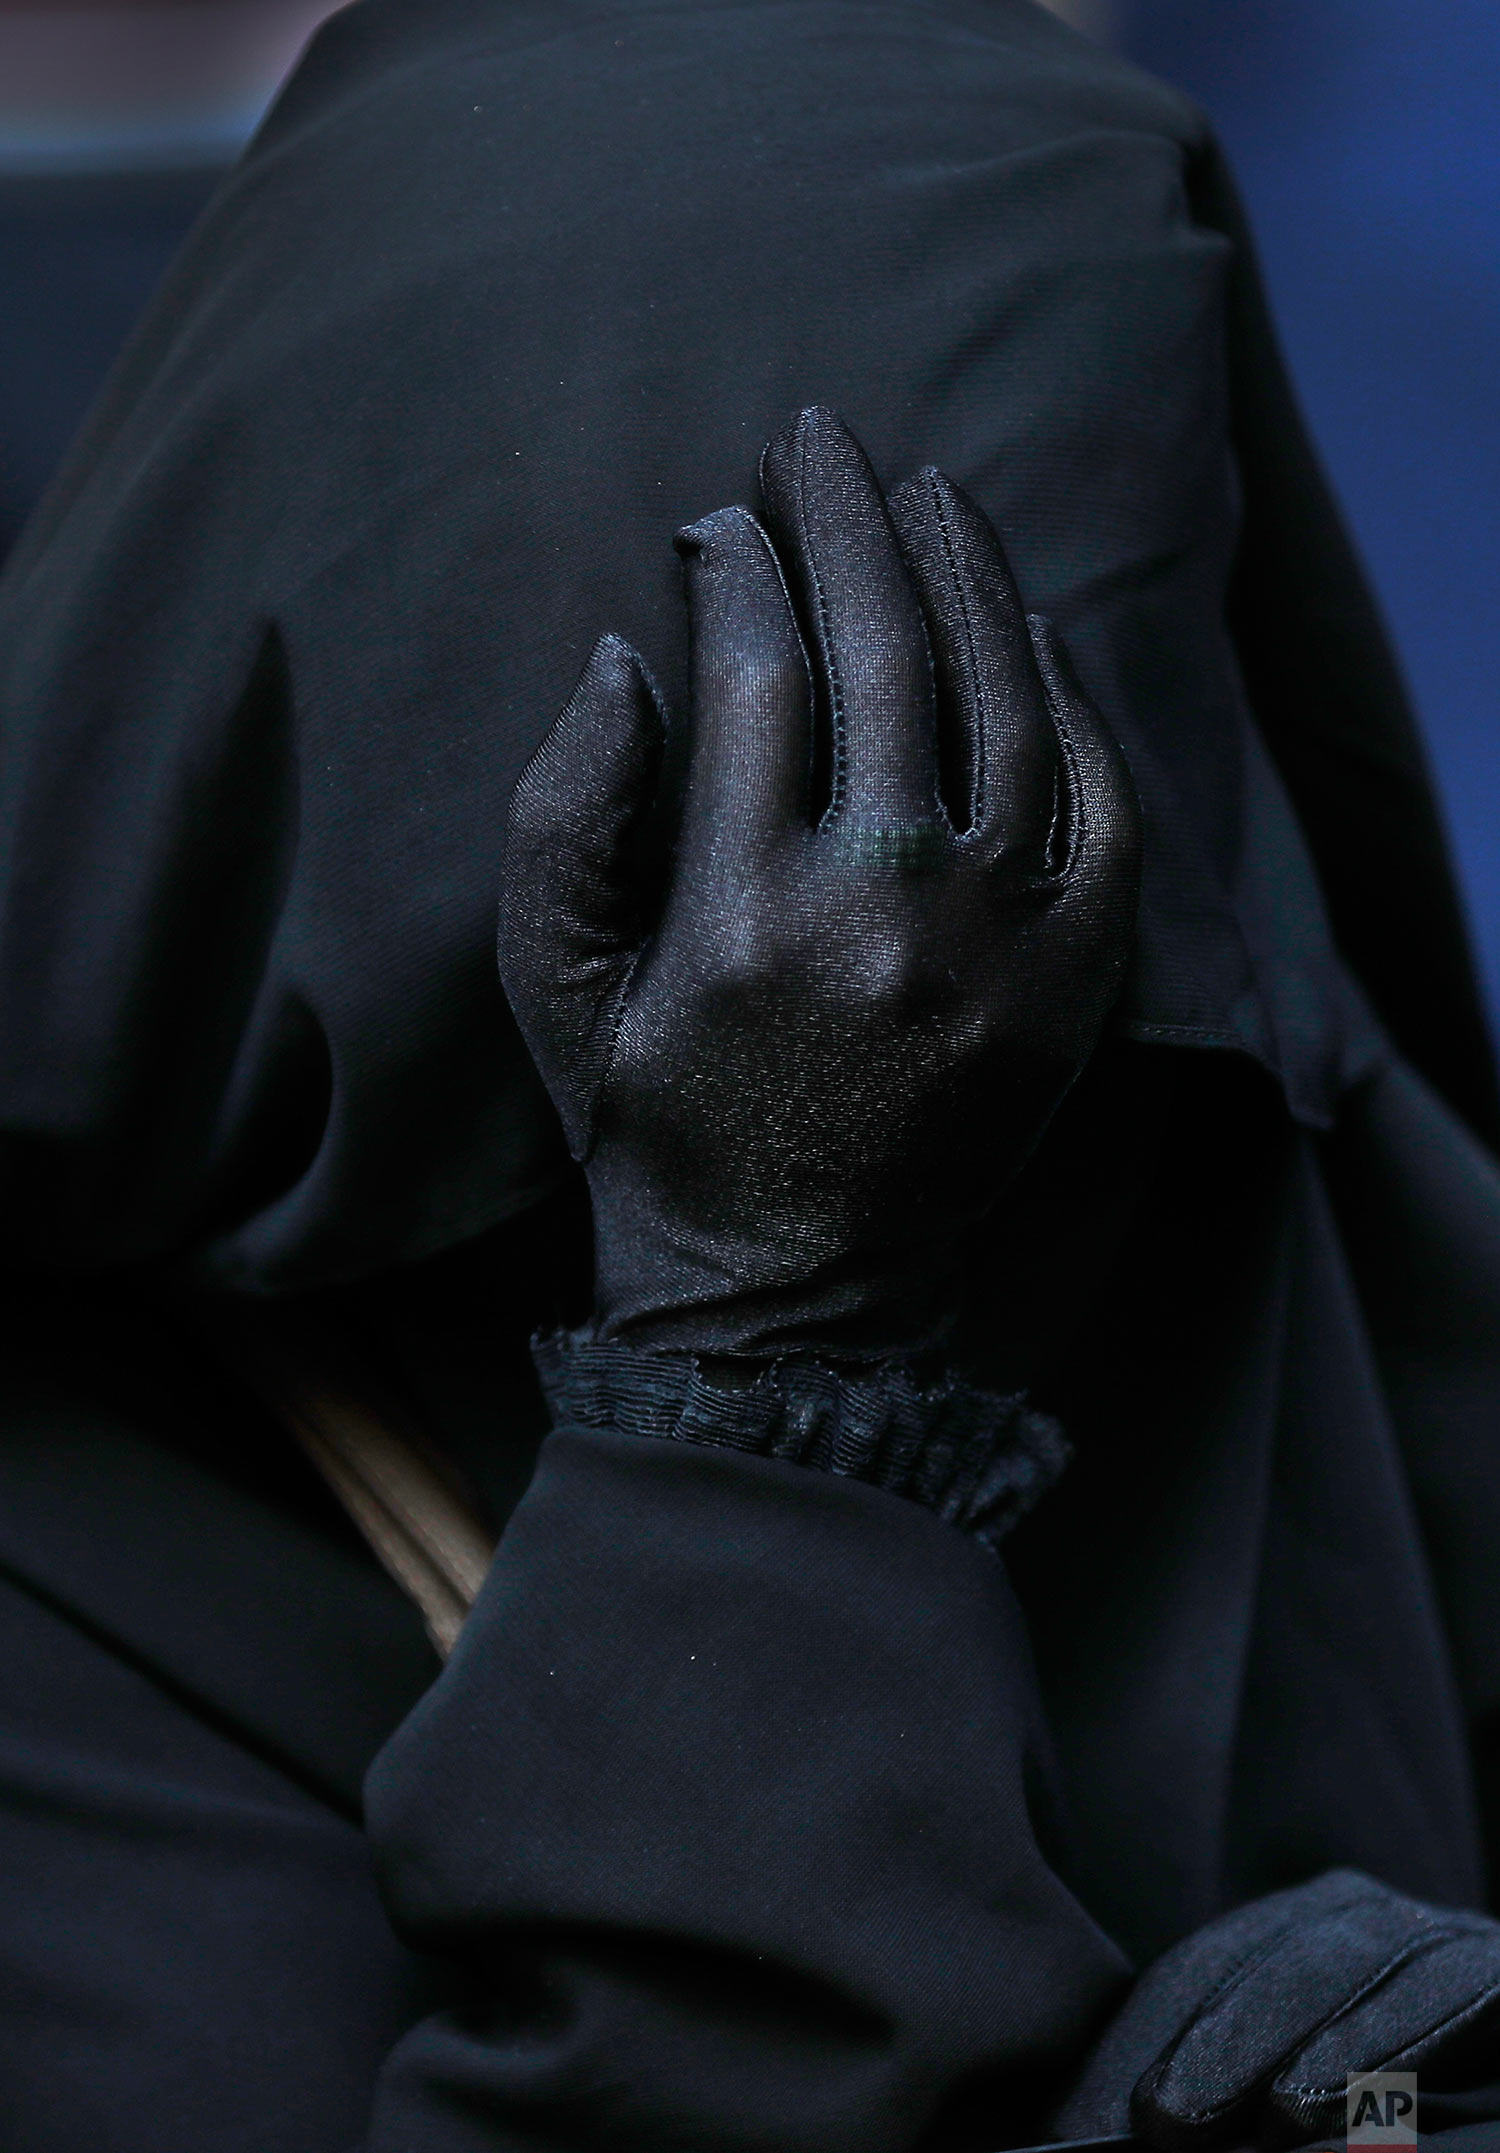 A veiled Lebanese woman supporter of a hardline Sunni cleric Ahmad al-Assir and 33 other militants who are standing trial, reacts during a protest outside the military tribunal, in Beirut, Lebanon,Thursday, Sept. 28, 2017. A military judge is scheduled to issue a verdict later in the day against Sheikh Ahmad al-Assir and 33 others on charges of fighting the Lebanese army in the southern city of Sidon in 2013. (AP Photo/Hussein Malla)